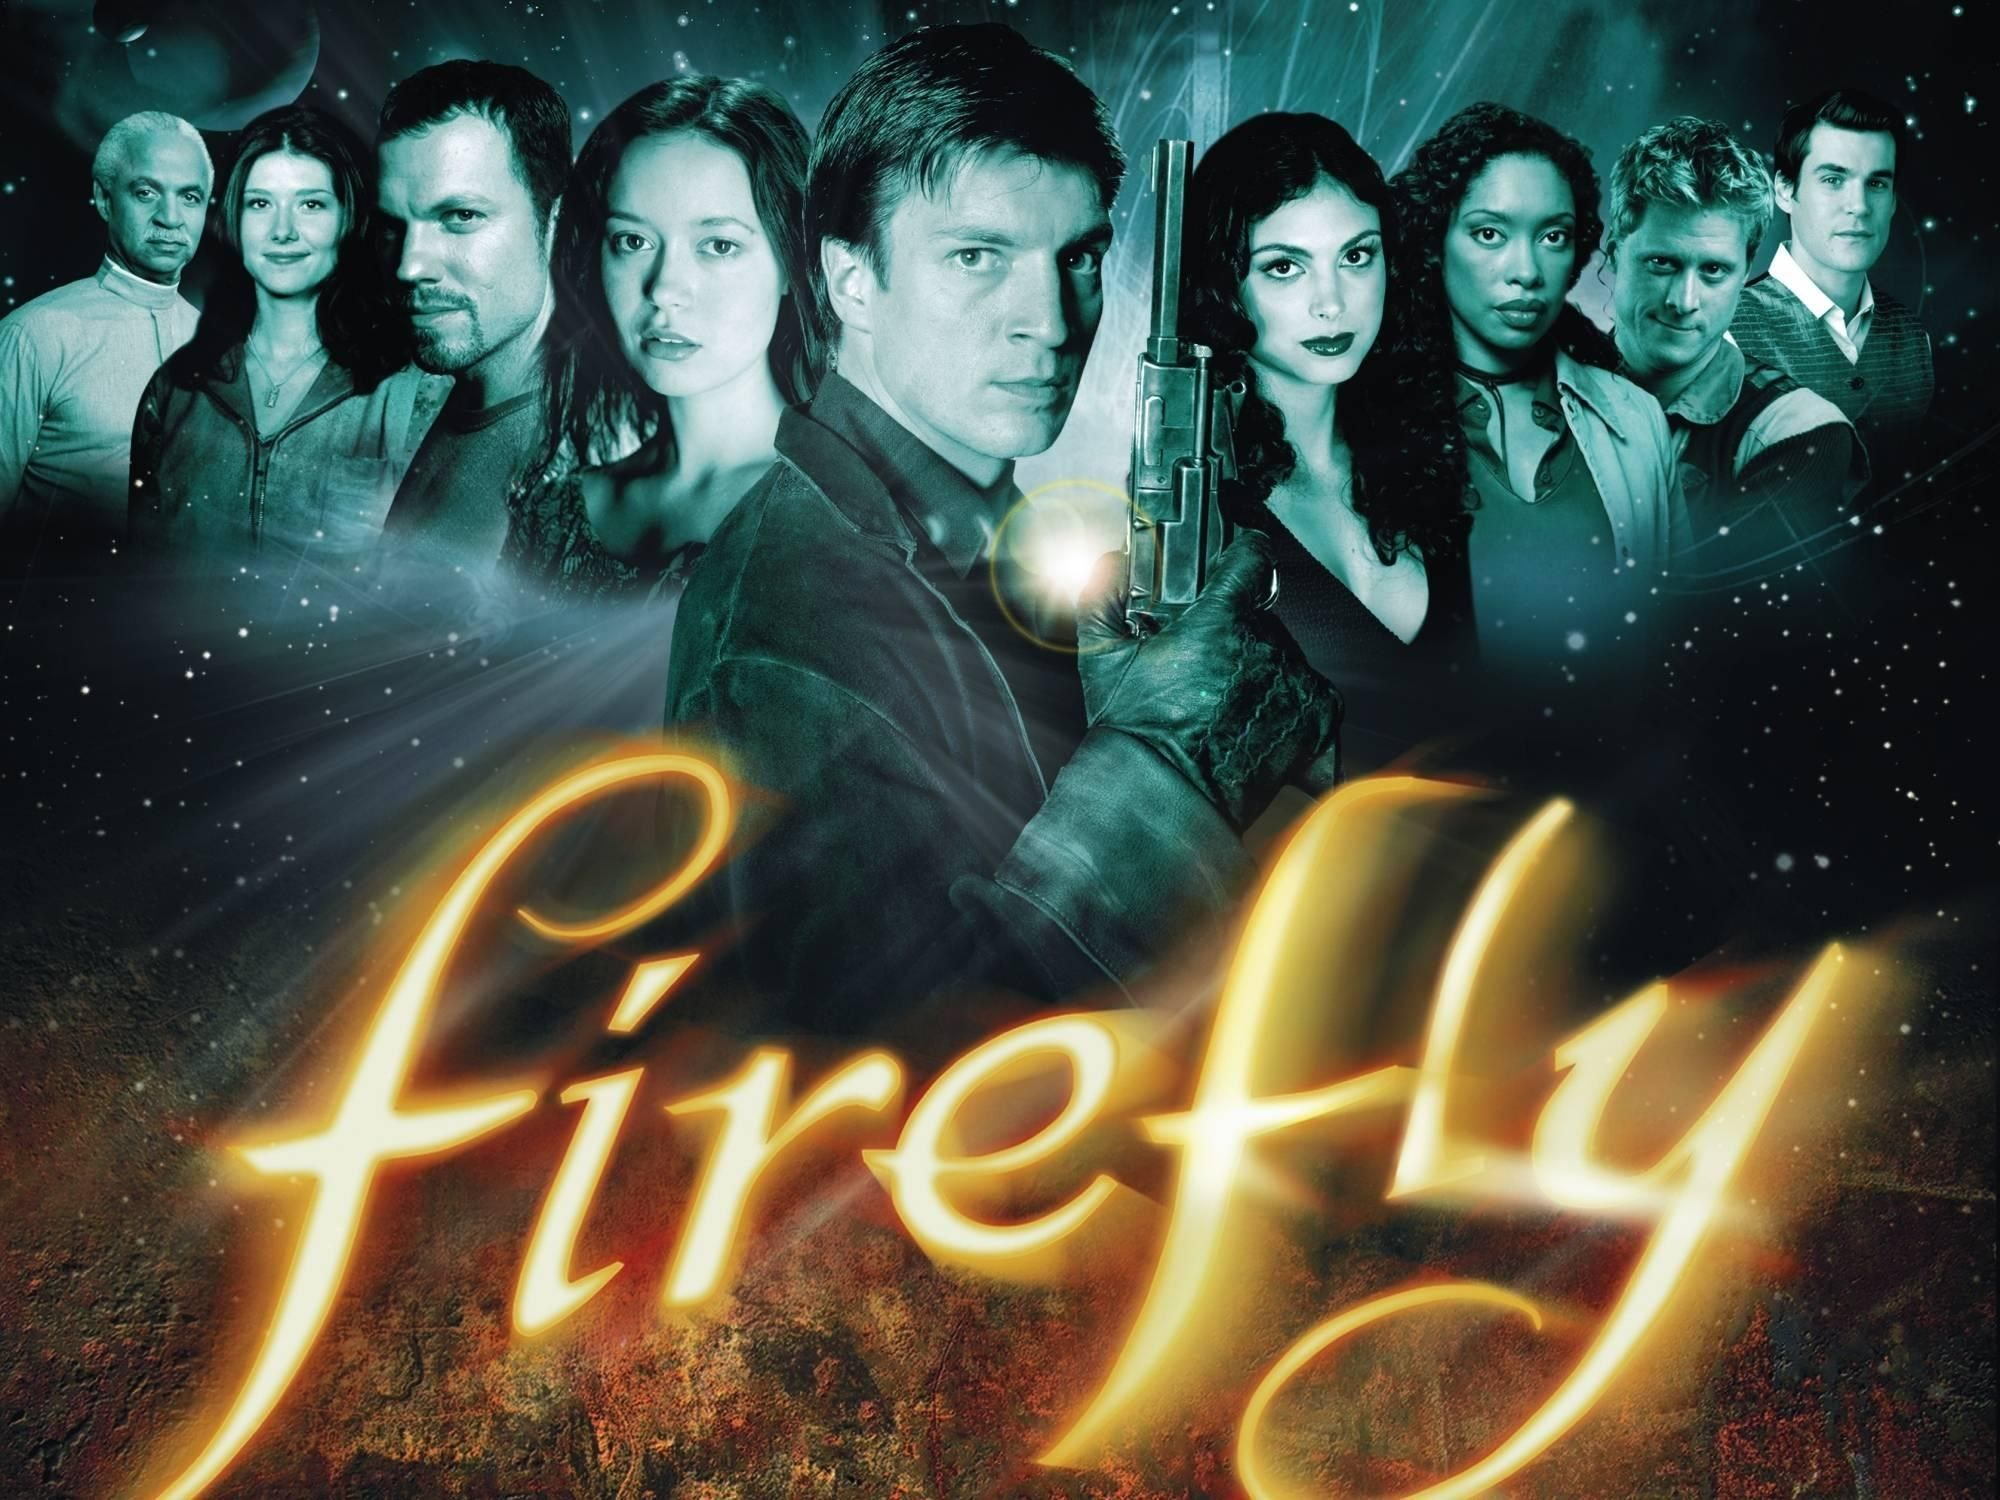 Tv Show Firefly Wallpapers Top Free Tv Show Firefly Backgrounds Wallpaperaccess